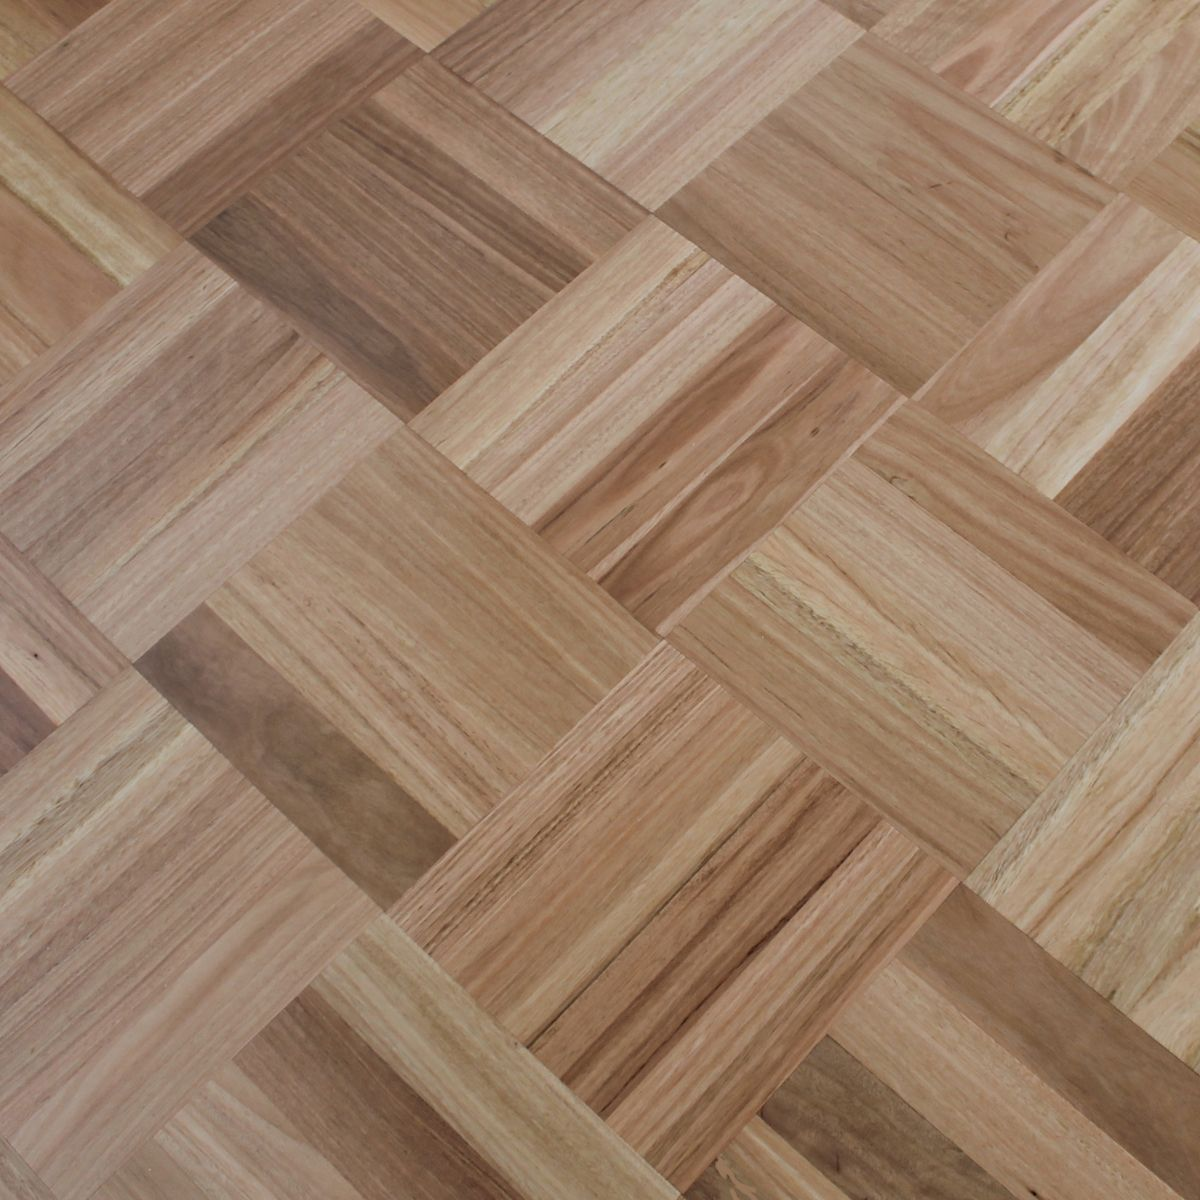 Flooring Companies Bay Area: Pin By Zealsea Timber Flooring On Parquetry In 2019